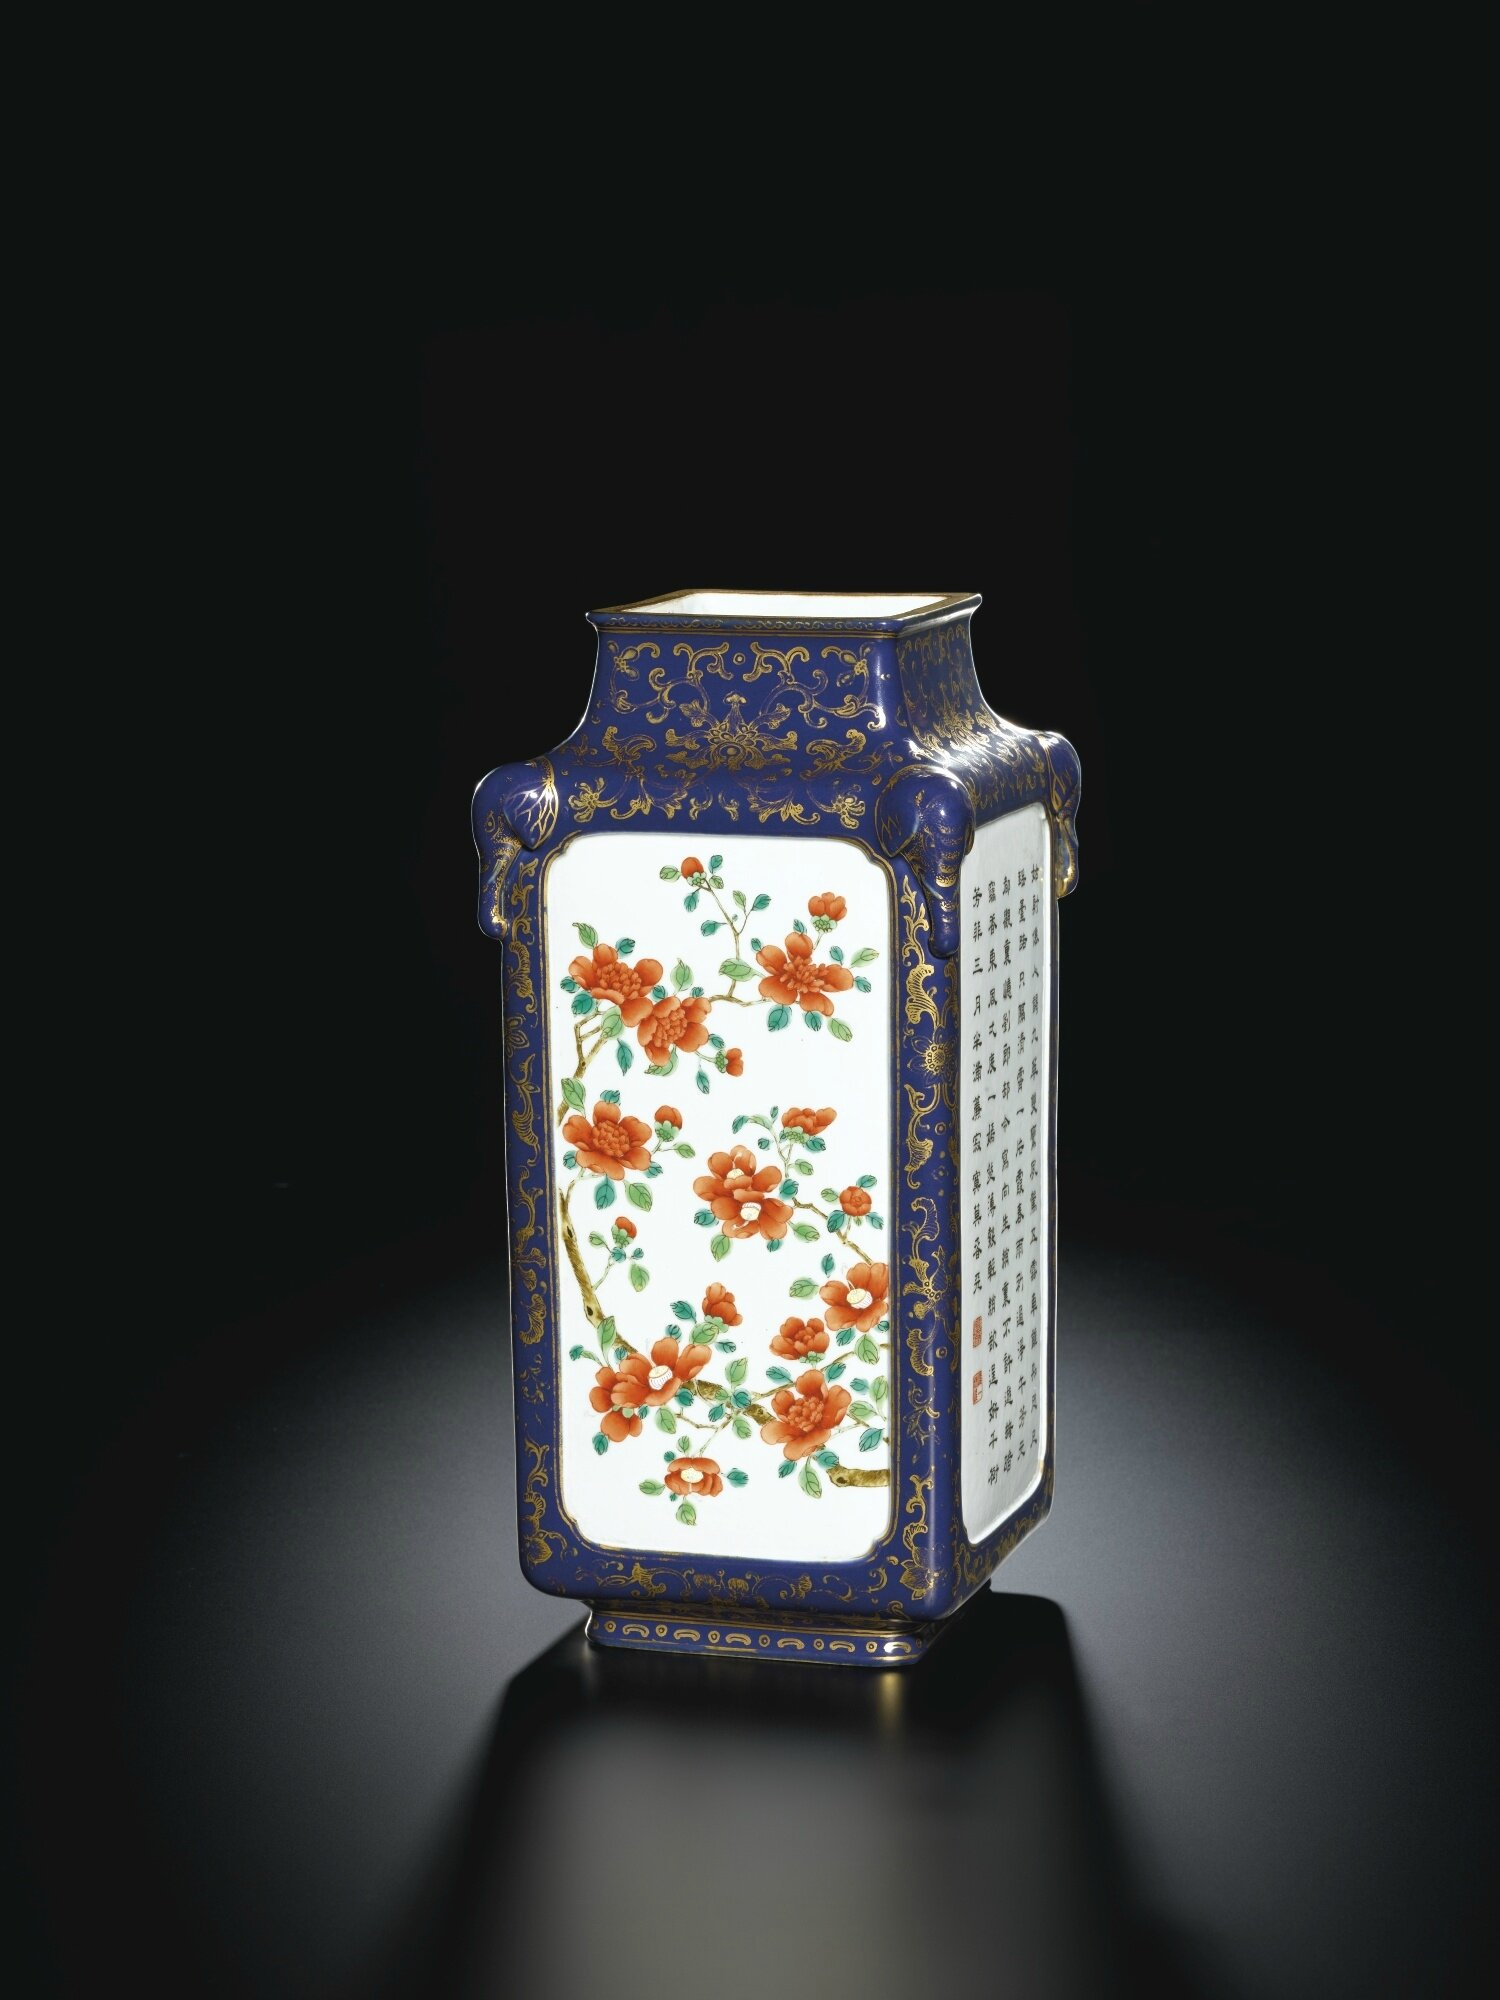 An exquisite blue ground and gilt decorated square vase with an exquisite blue ground and gilt decorated square vase with flowers and inscribed poems qing dynasty qianlong period reviewsmspy